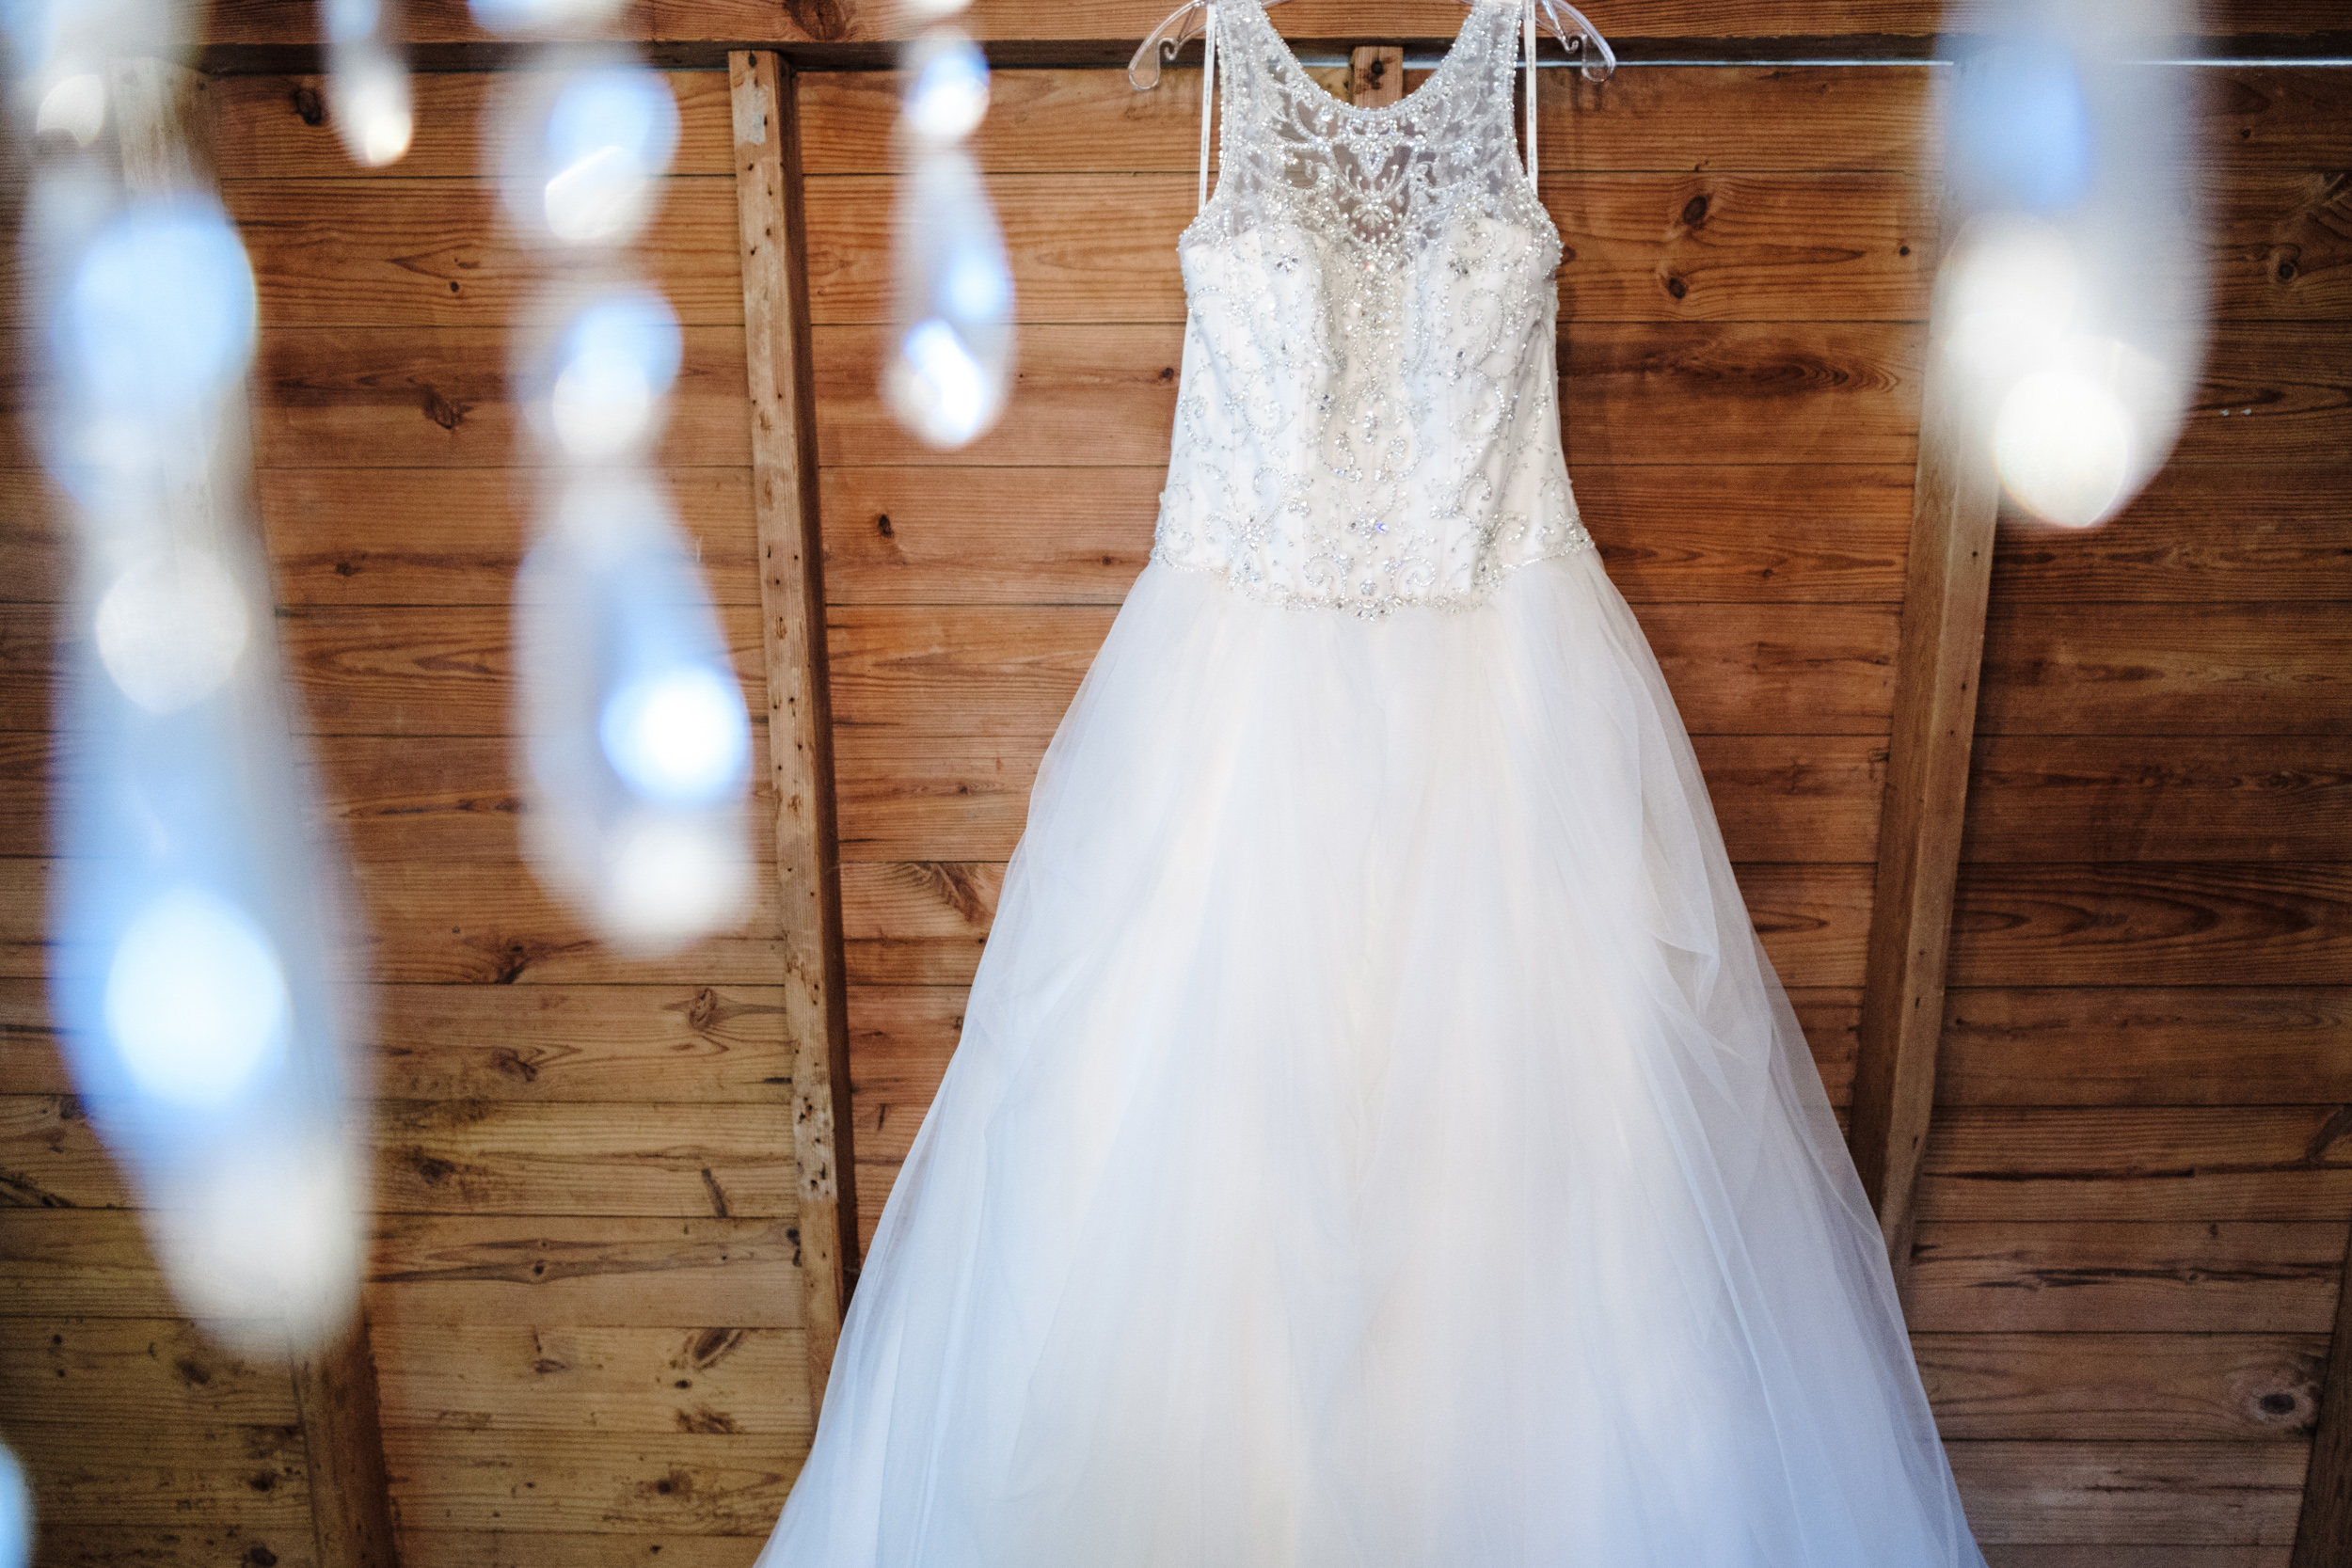 Andrea Caleb Happily Ever After Barn Wedding-6.jpg